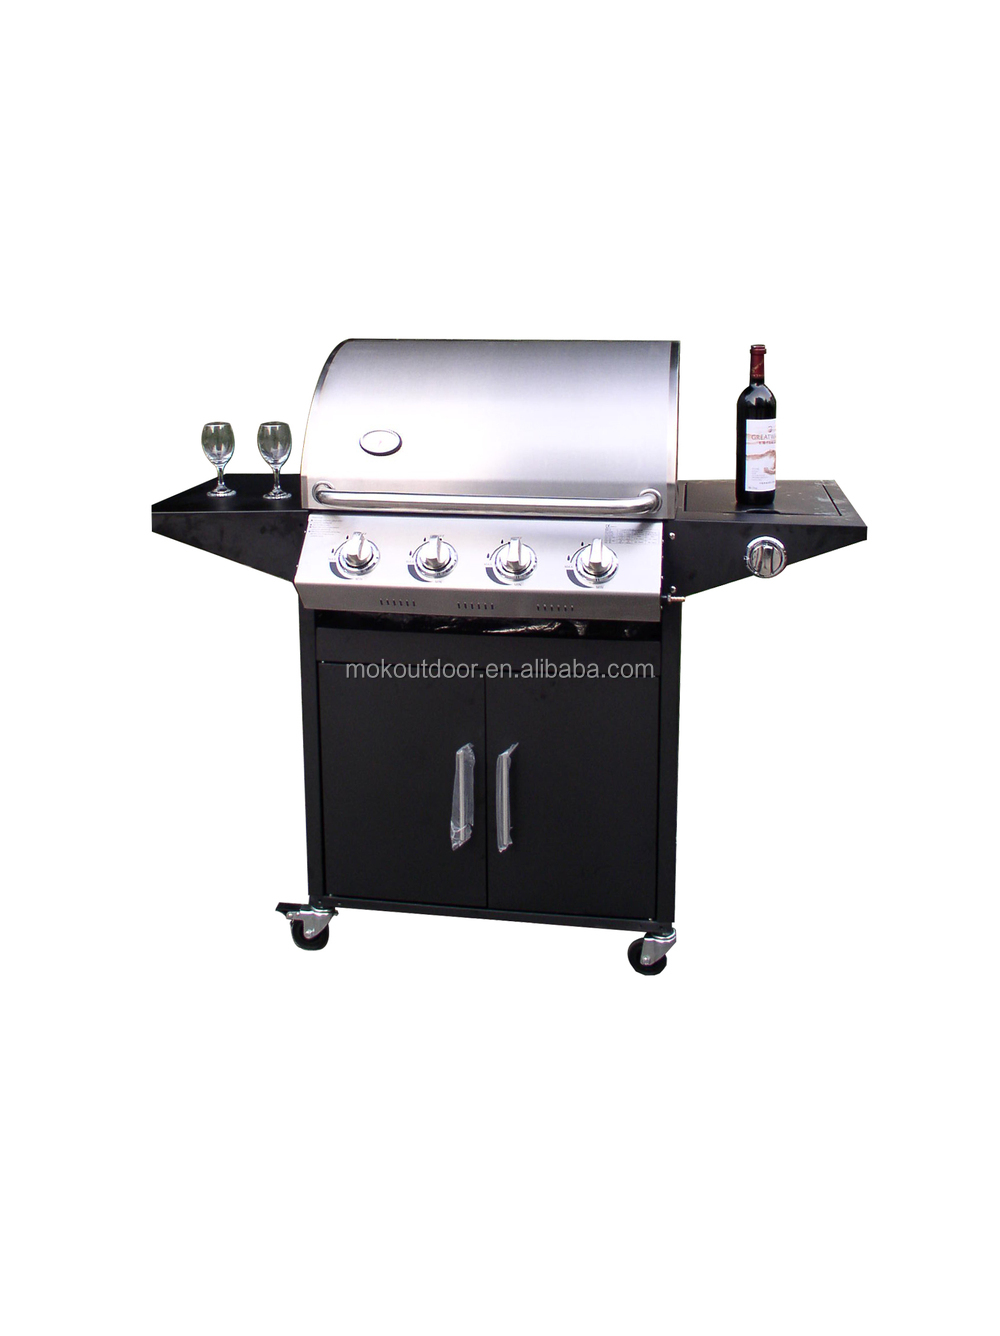 Bbq pro burner gas grill with stainless steel